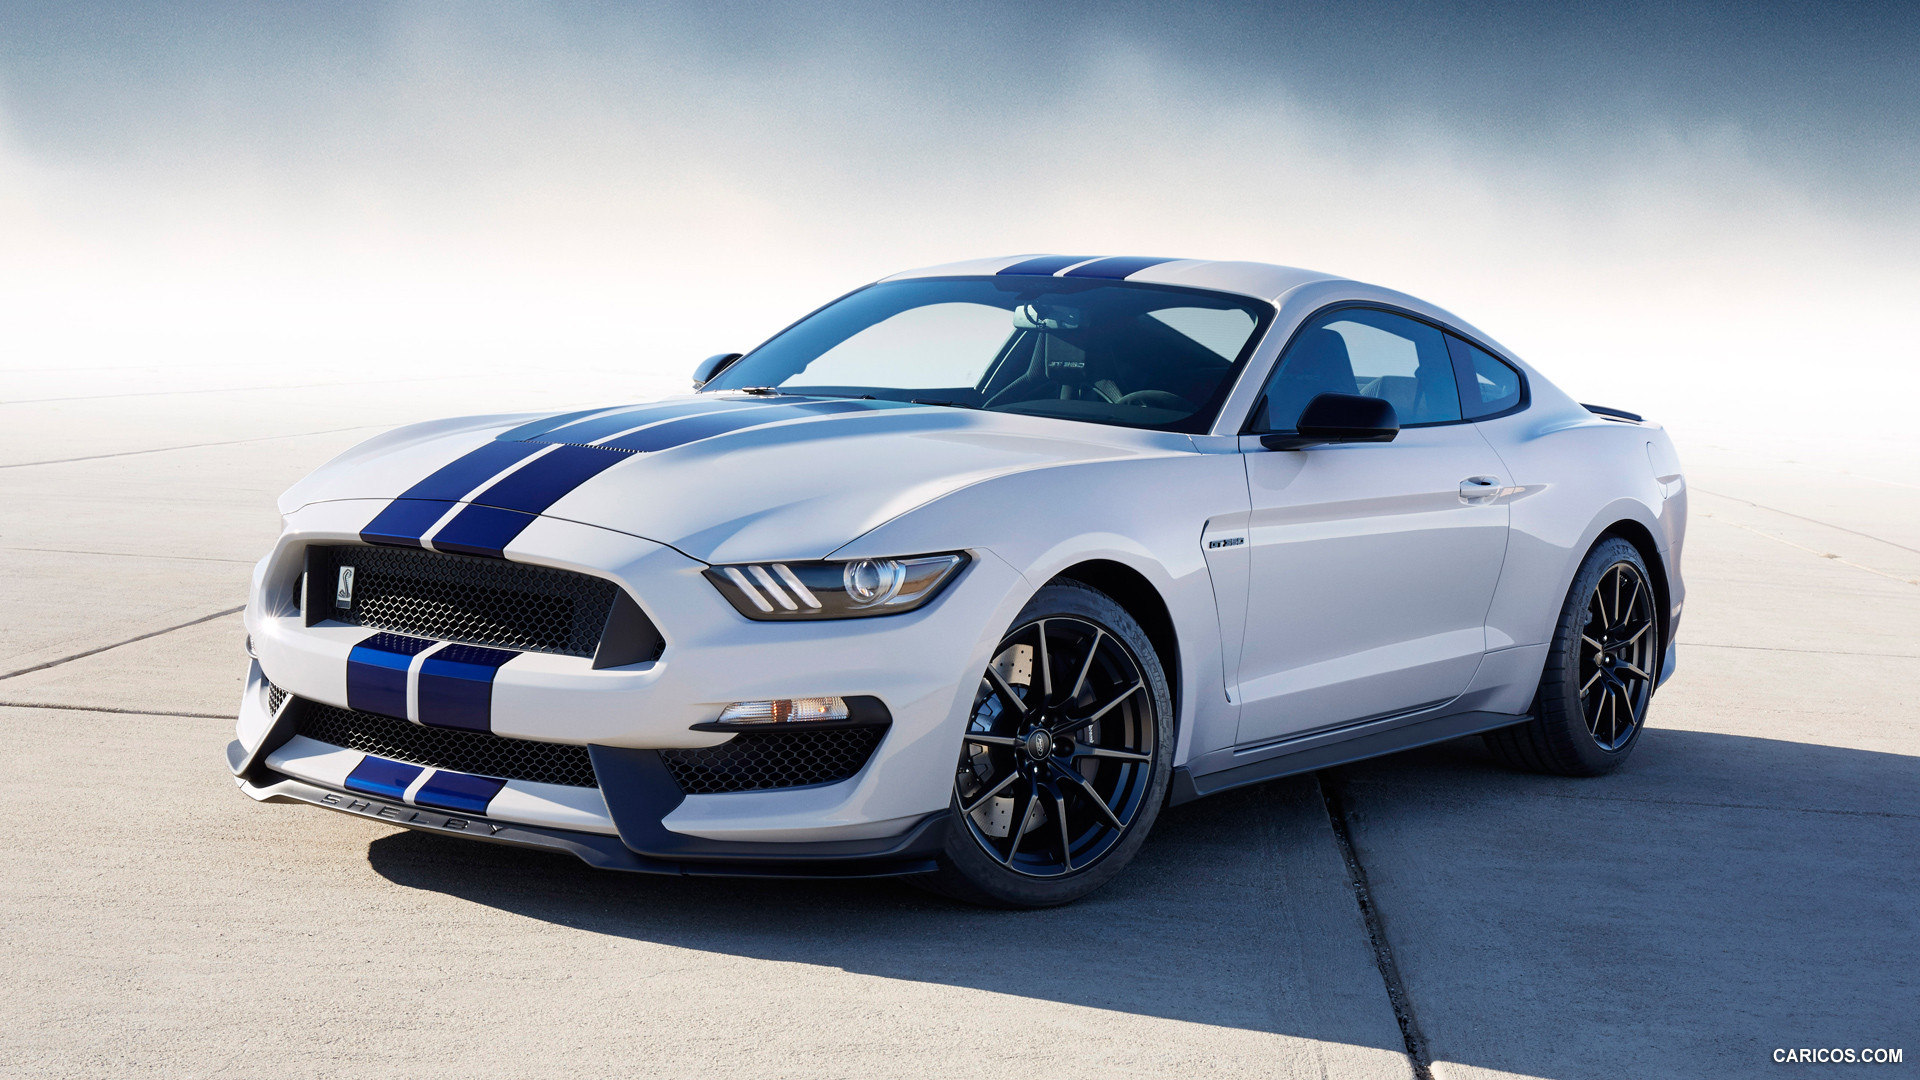 1920x1080 - Shelby Mustang GT 350 Wallpapers 11